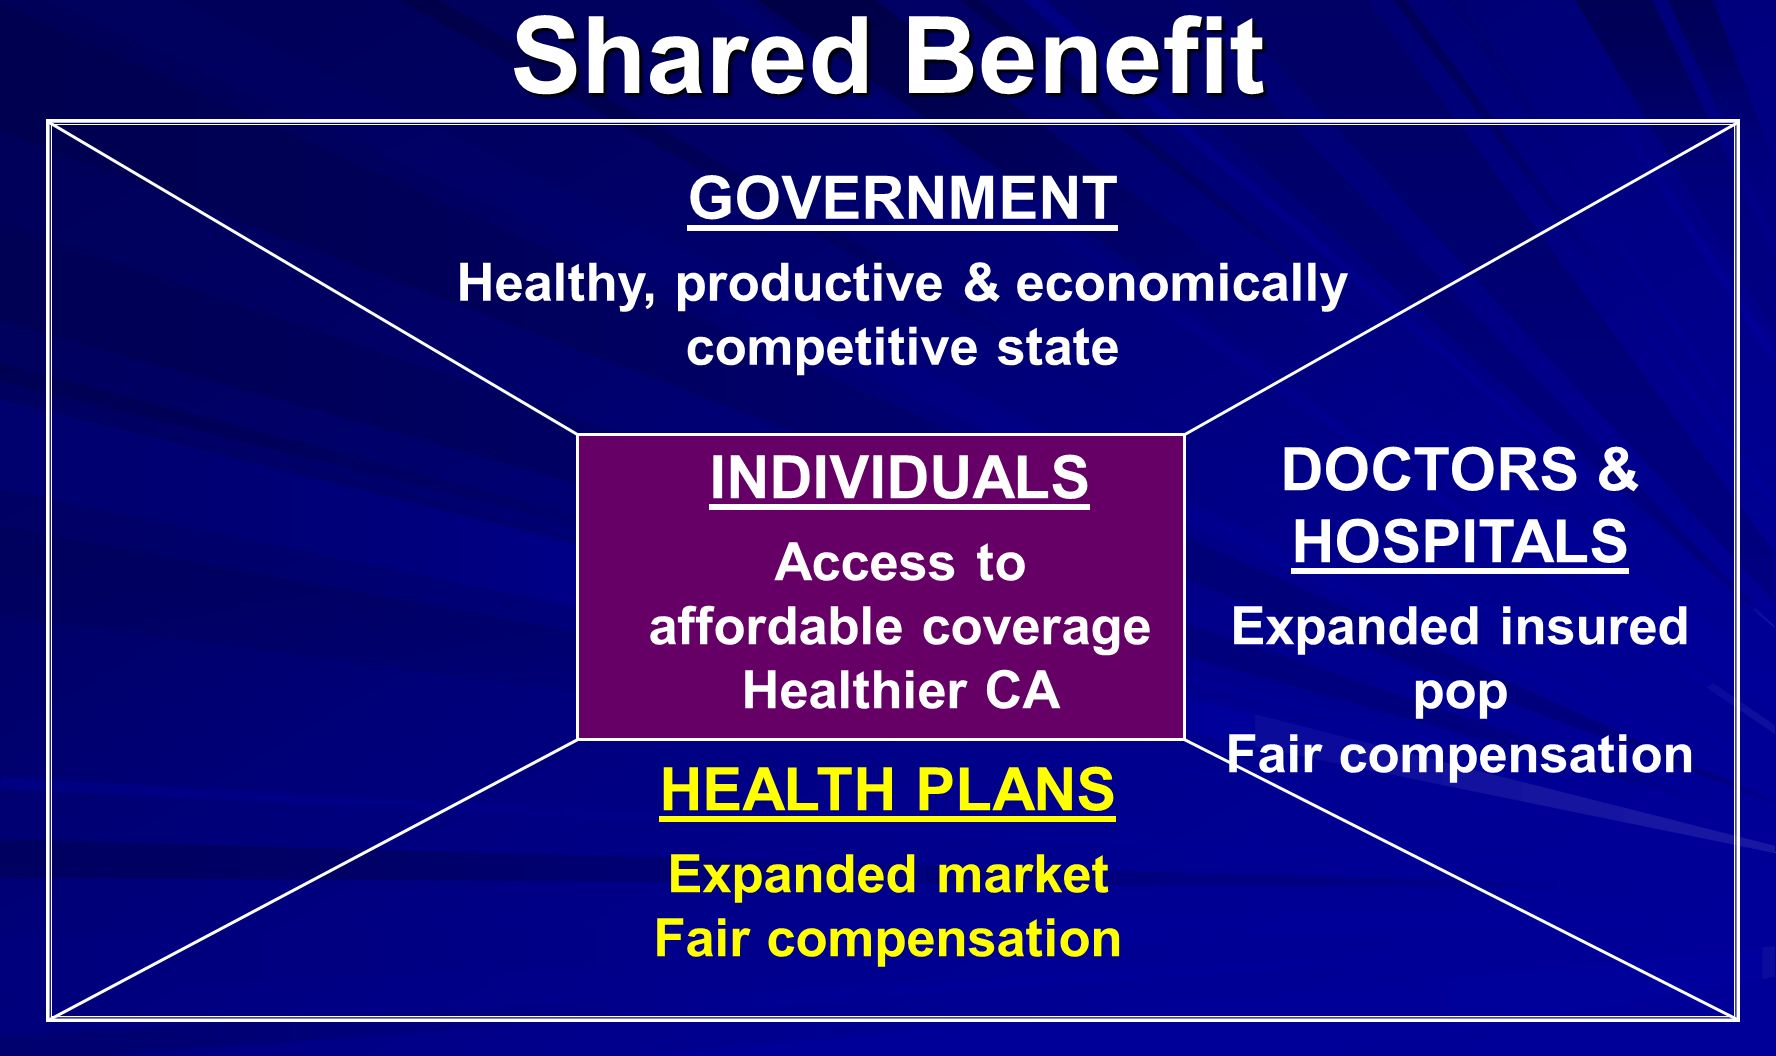 GOVERNMENT Healthy, productive & economically competitive state DOCTORS & HOSPITALS Expanded insured pop Fair compensation Shared Benefit HEALTH PLANS Expanded market Fair compensation INDIVIDUALS Access to affordable coverage Healthier CA